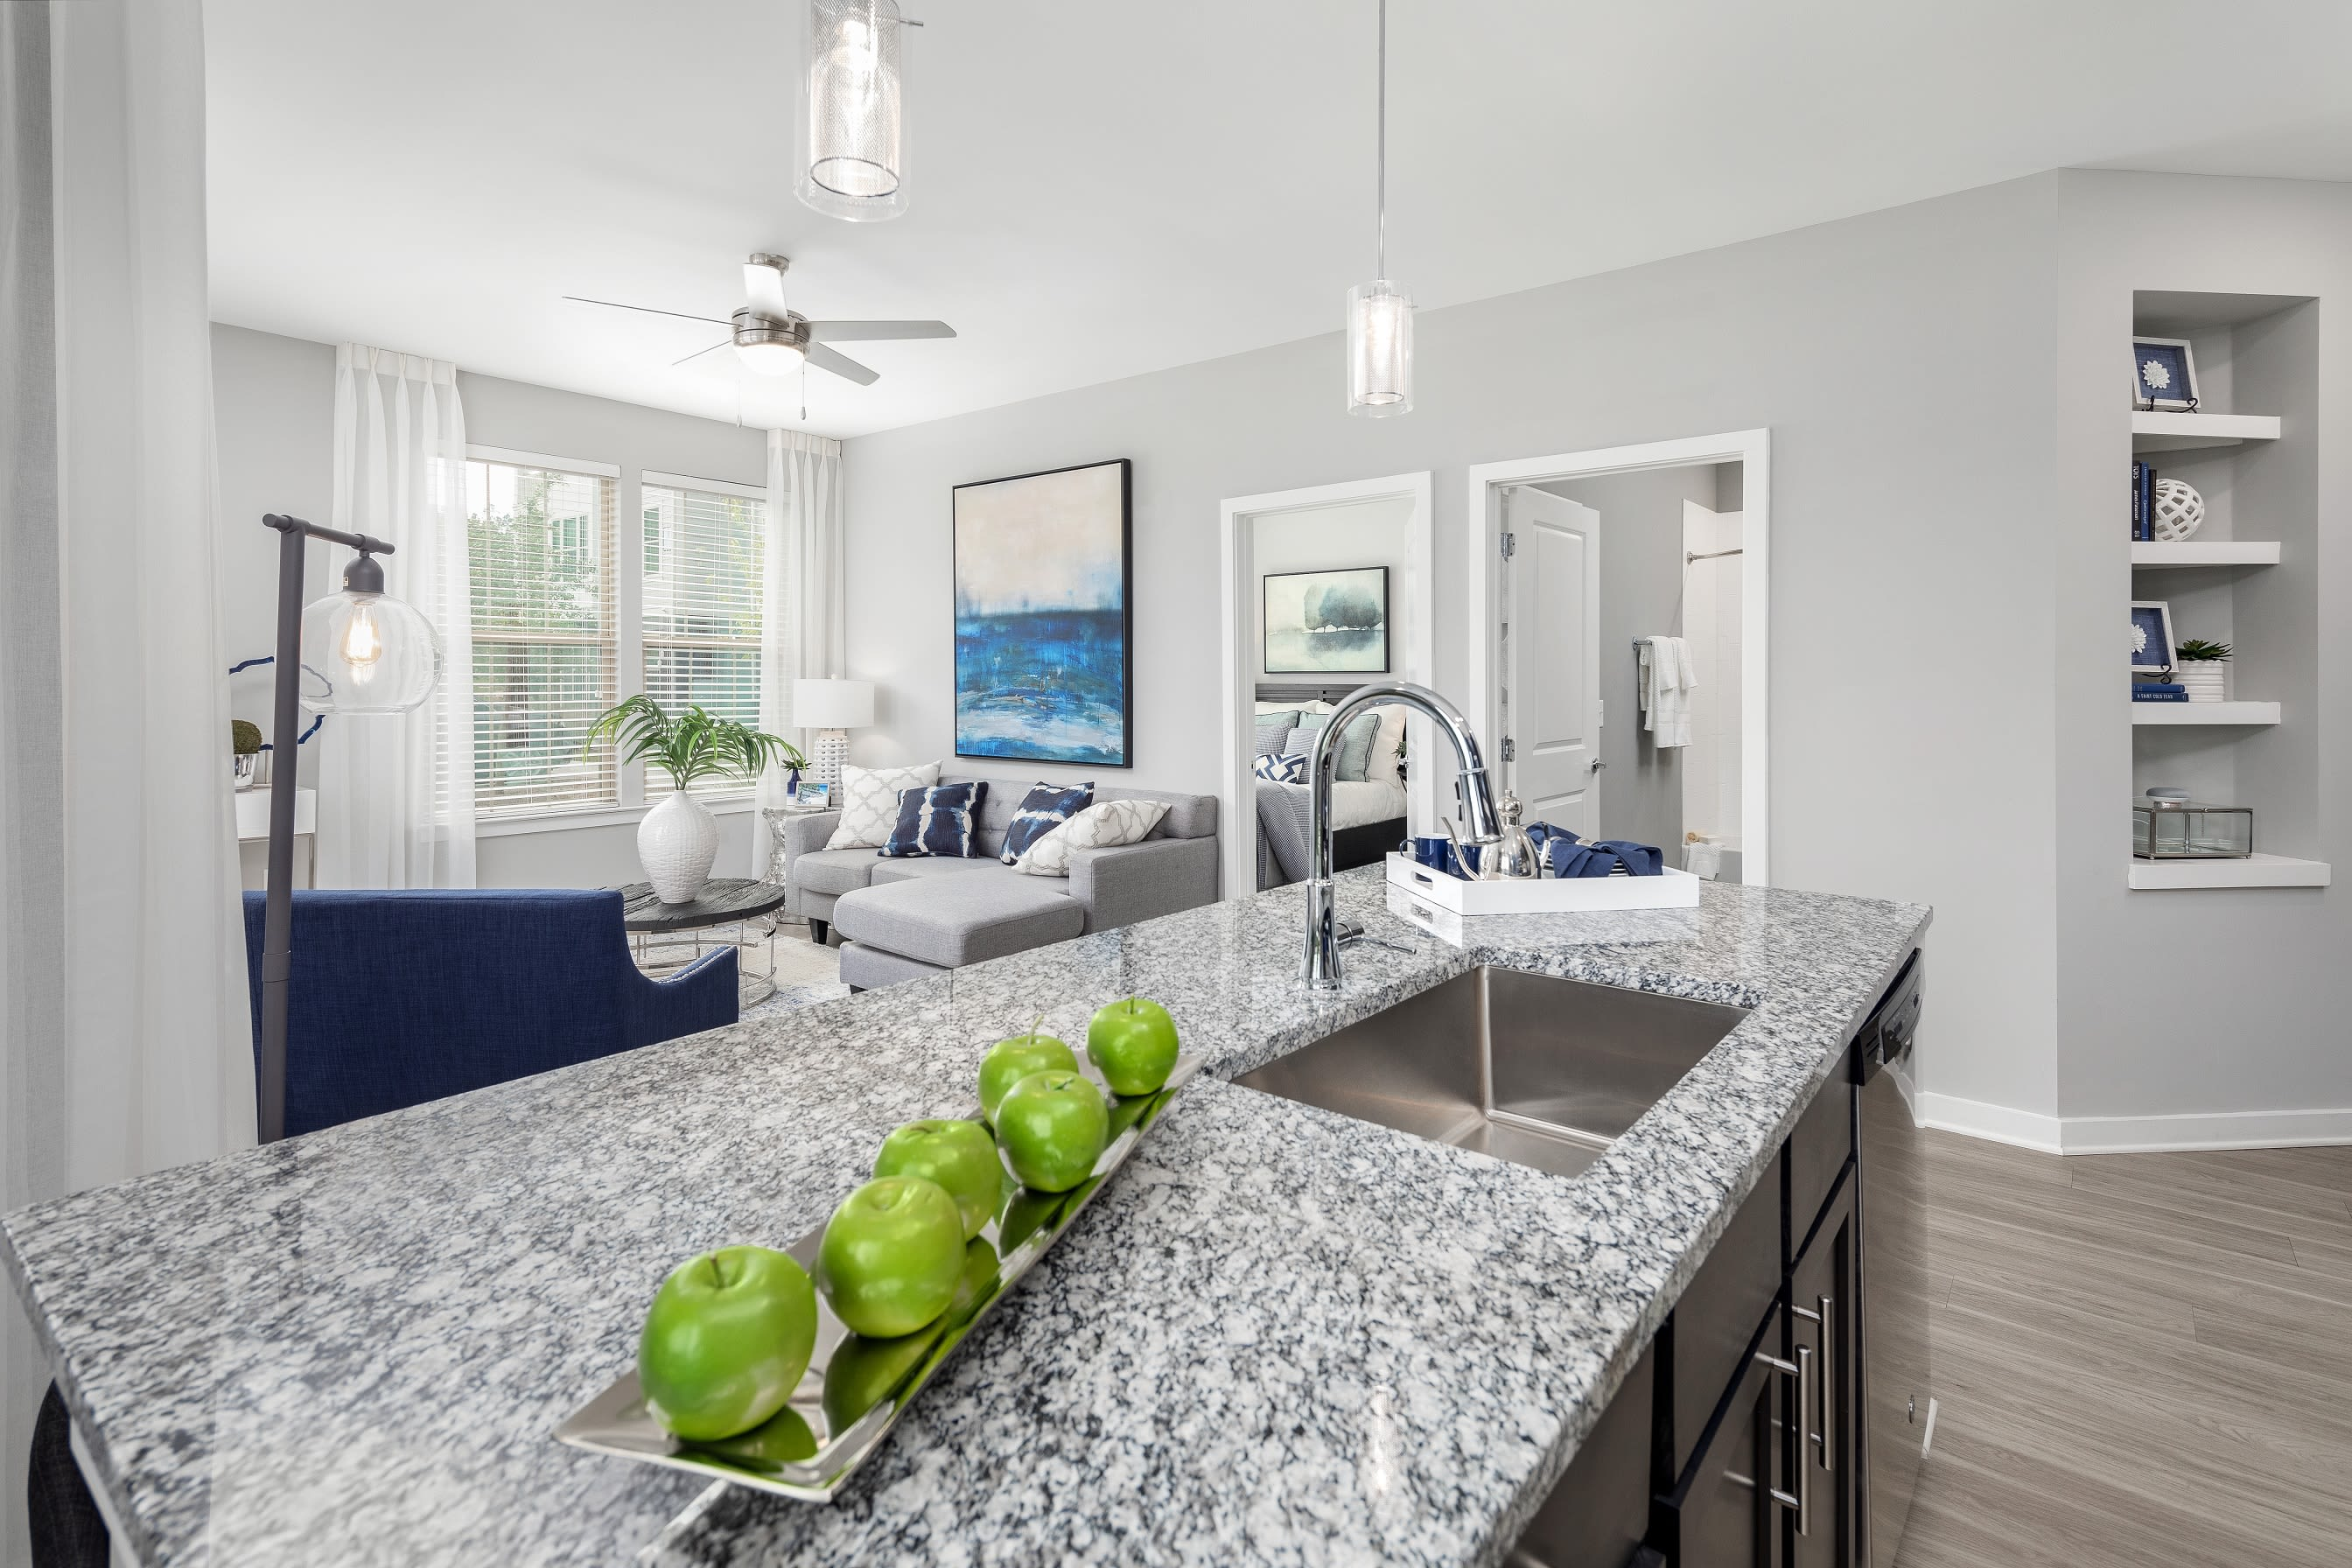 Open concept floor plan with granite countertop kitchen at Elevate at Brighton Park in Summerville, South Carolina